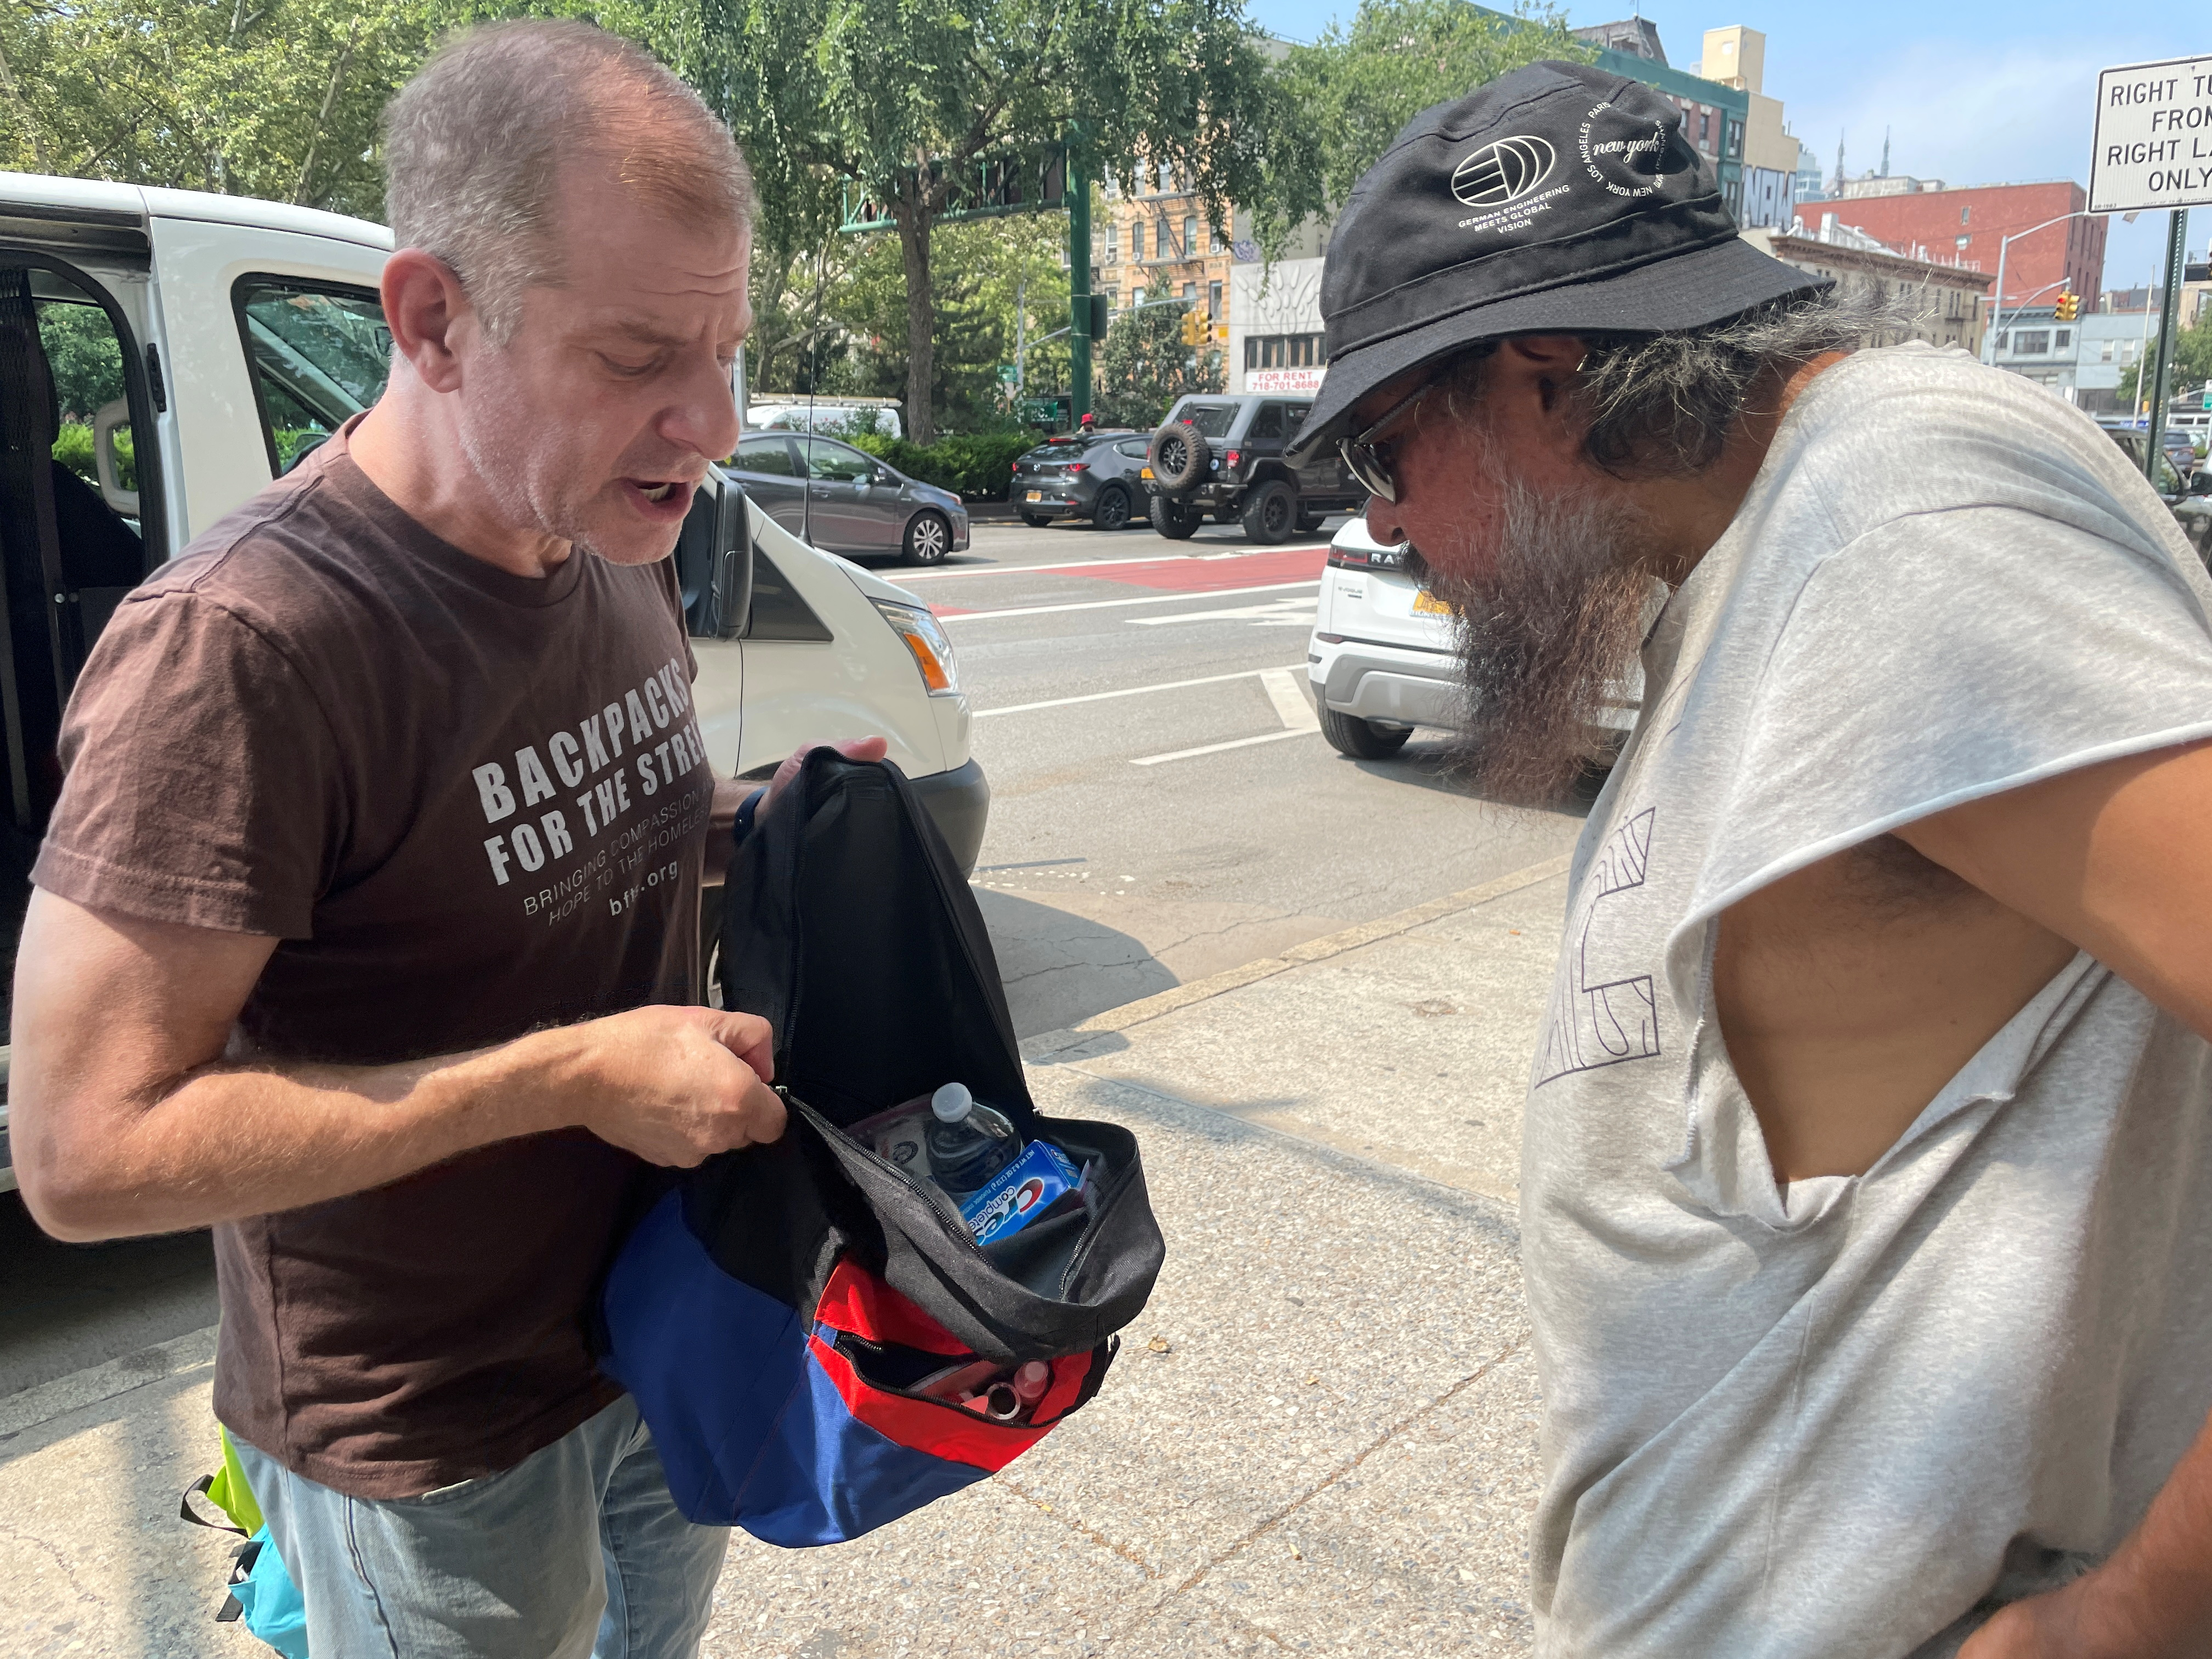 Backpacks For The Street's President and CEO Jeffrey Newman shows a backpack with supplies for the homeless, in New York City, U.S., August 10, 2021. REUTERS/Roselle Chen